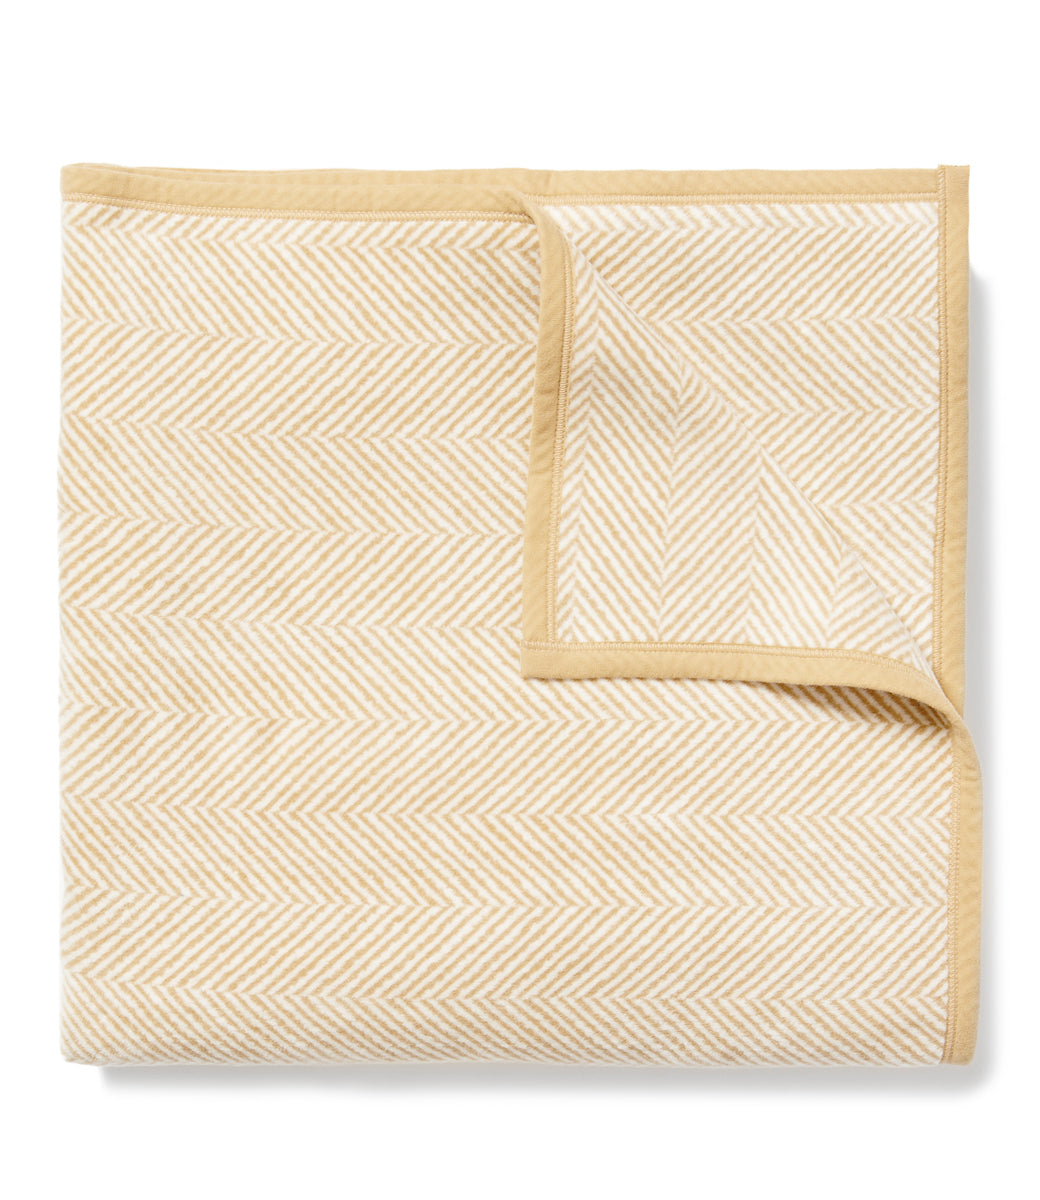 Harborview Herringbone Beige Royal Blanket